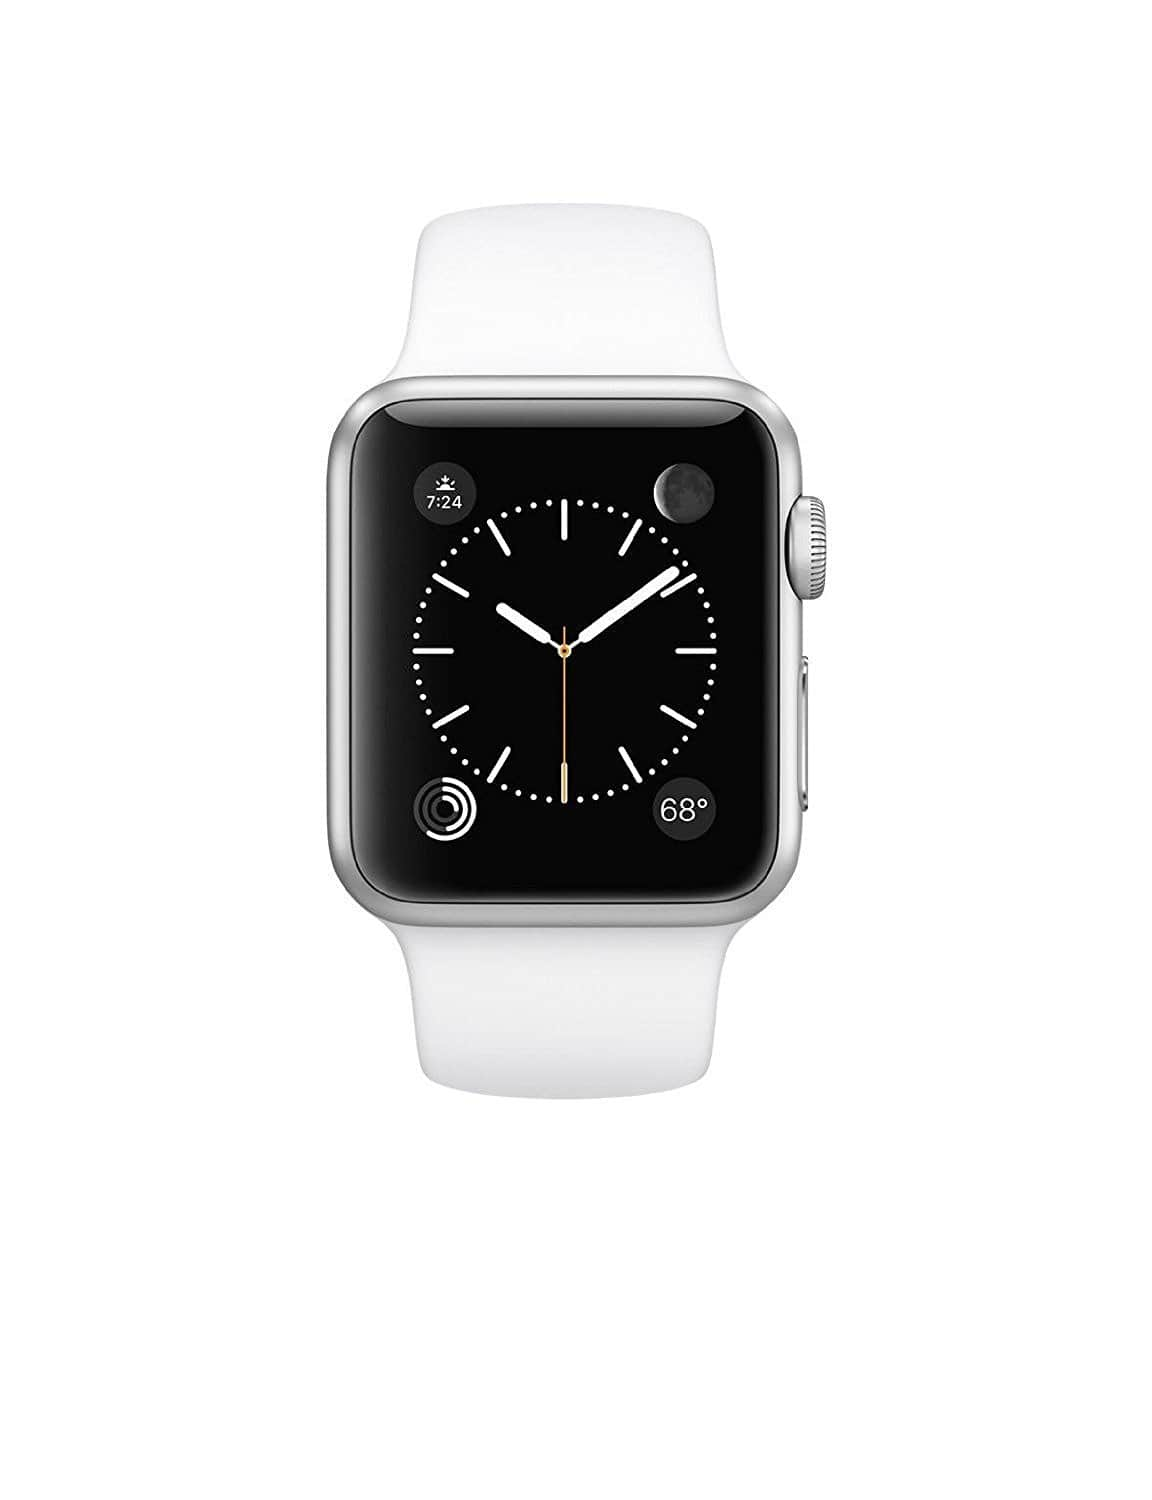 Apple Watch Sport 42mm Smartwatch (Silver Aluminum Case w/ White Sport Band) $205 w/ Masterpass Checkout & more + Free Shipping @ Newegg